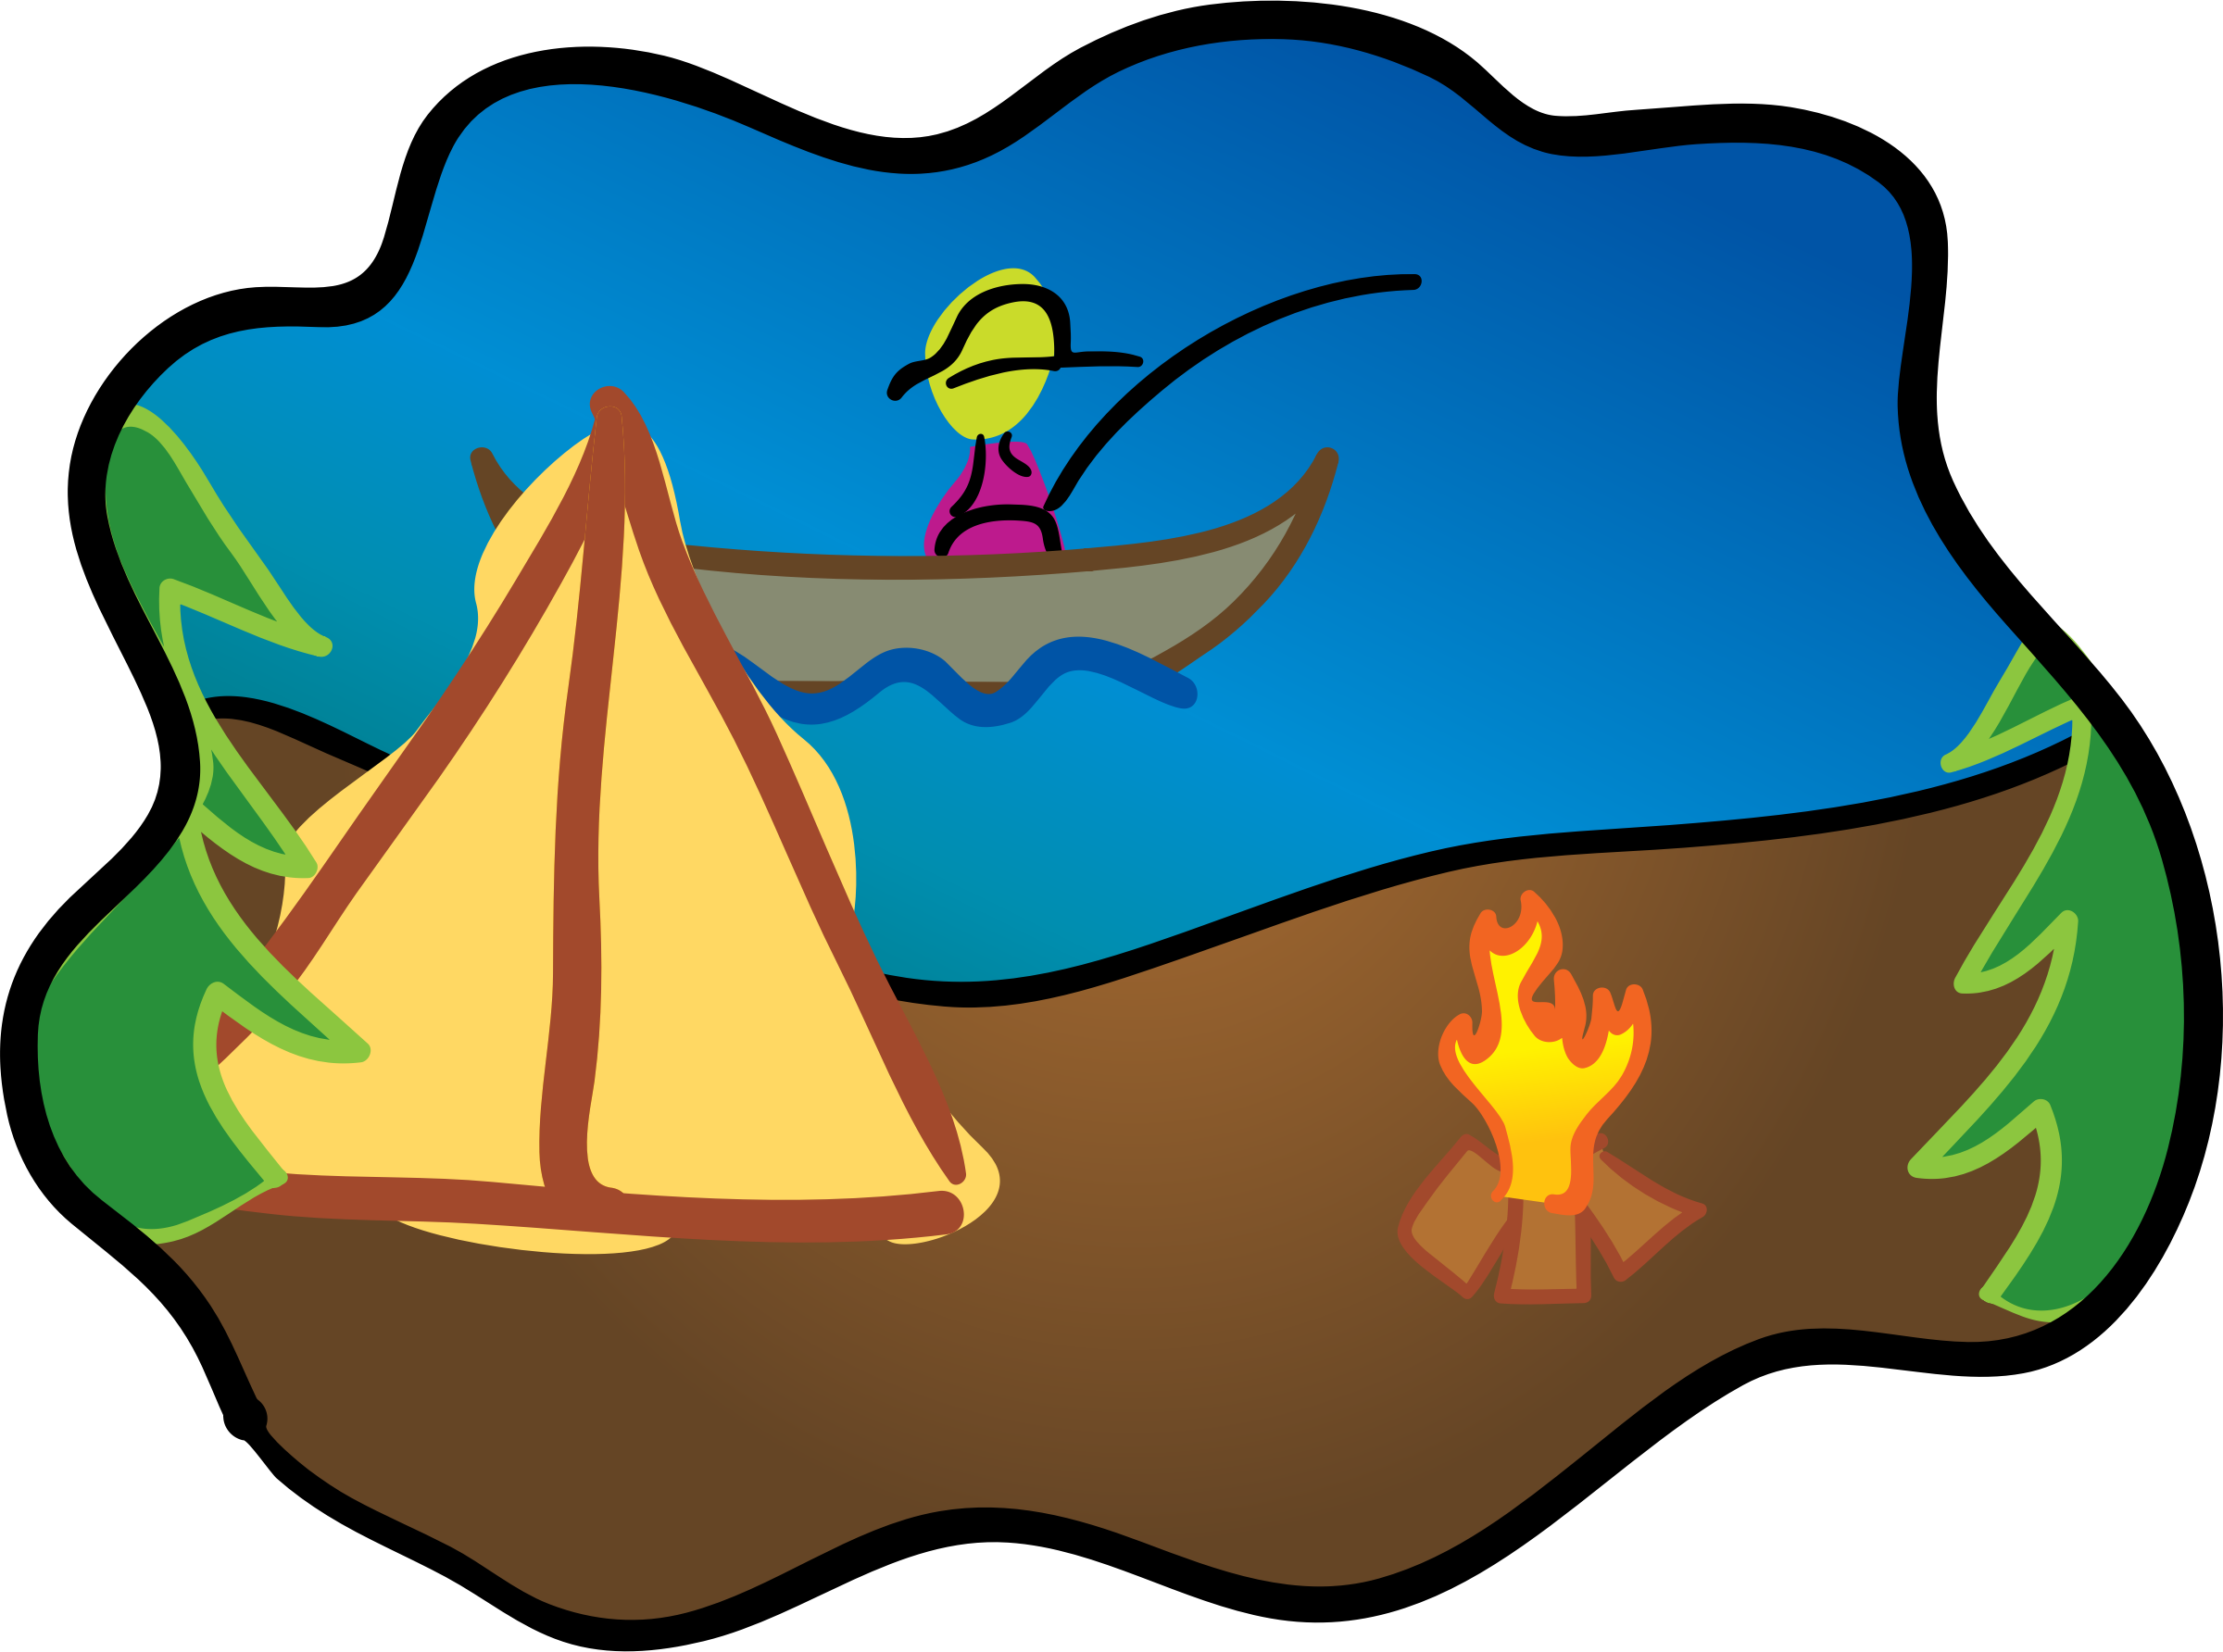 Happy camping big image. Land clipart park scene